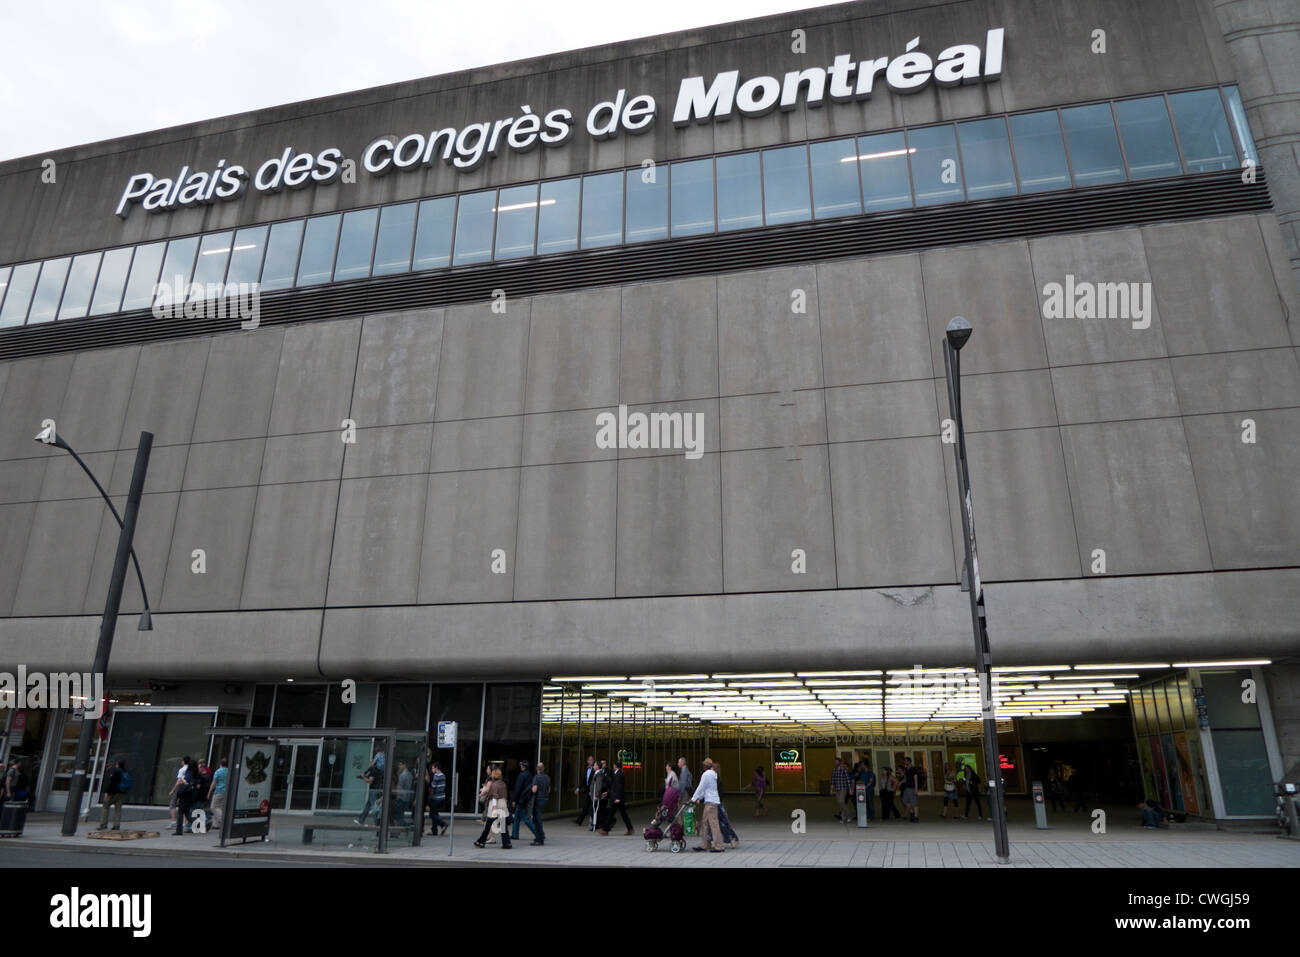 Palais des congres de Montreal sign and pedestrians passing building on street outside exterior of concrete building Stock Photo